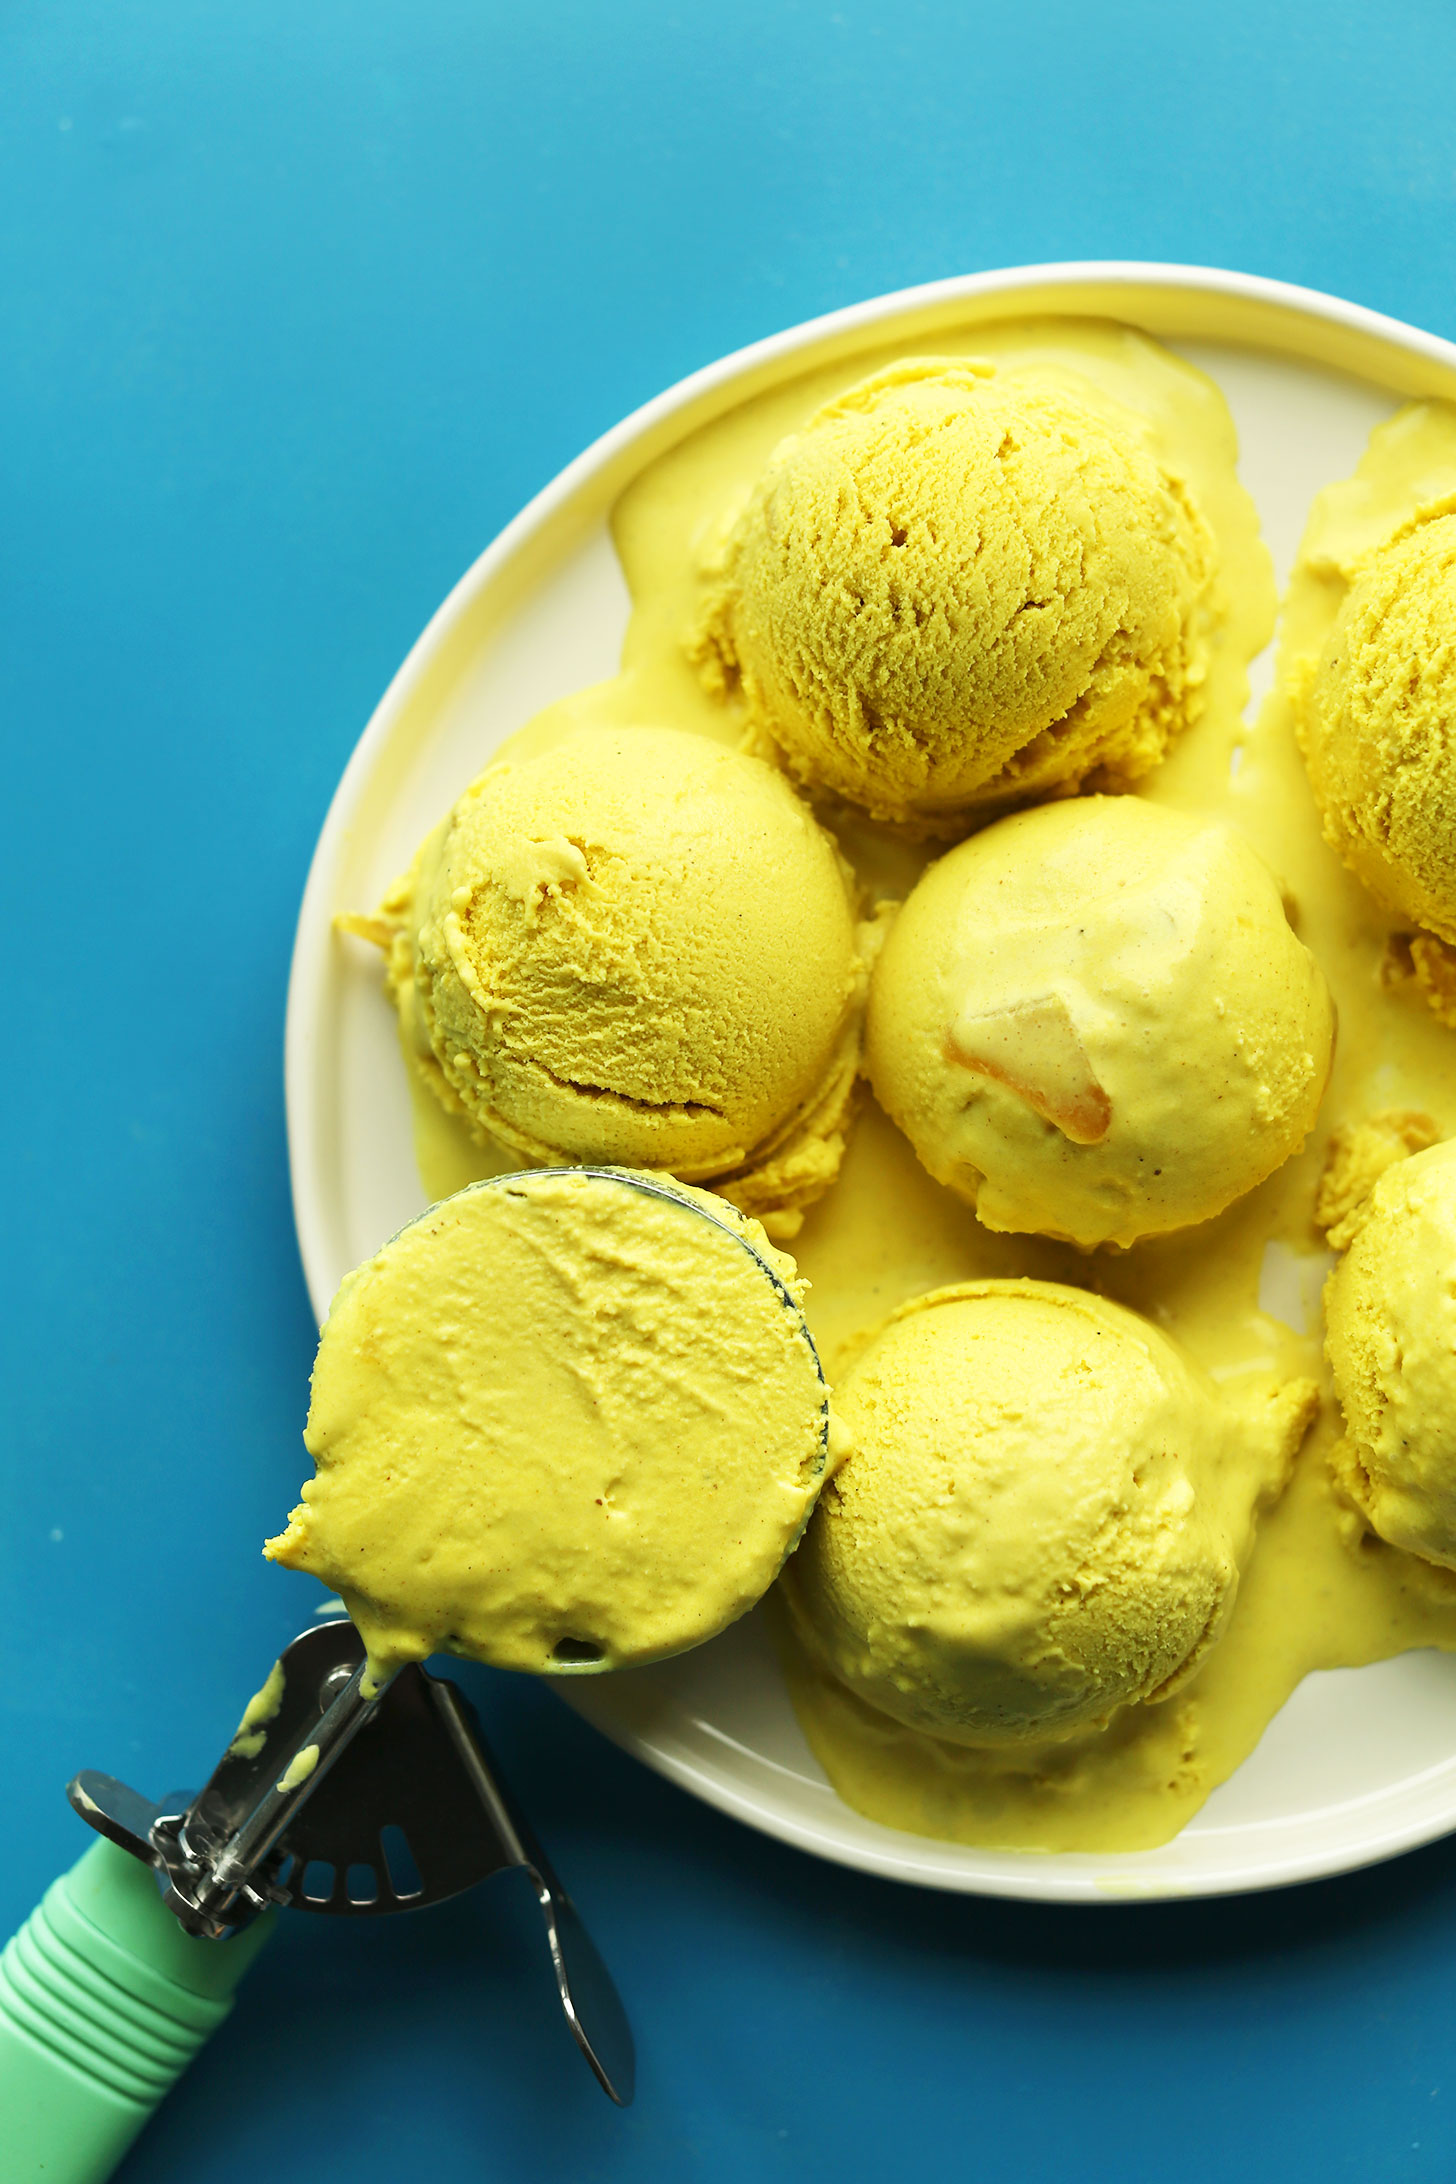 CREAMY-Golden-Milk-ICE-CREAM-vegan-glutenfree-healthy-icecream-dessert-recipe-turmeric-.jpg